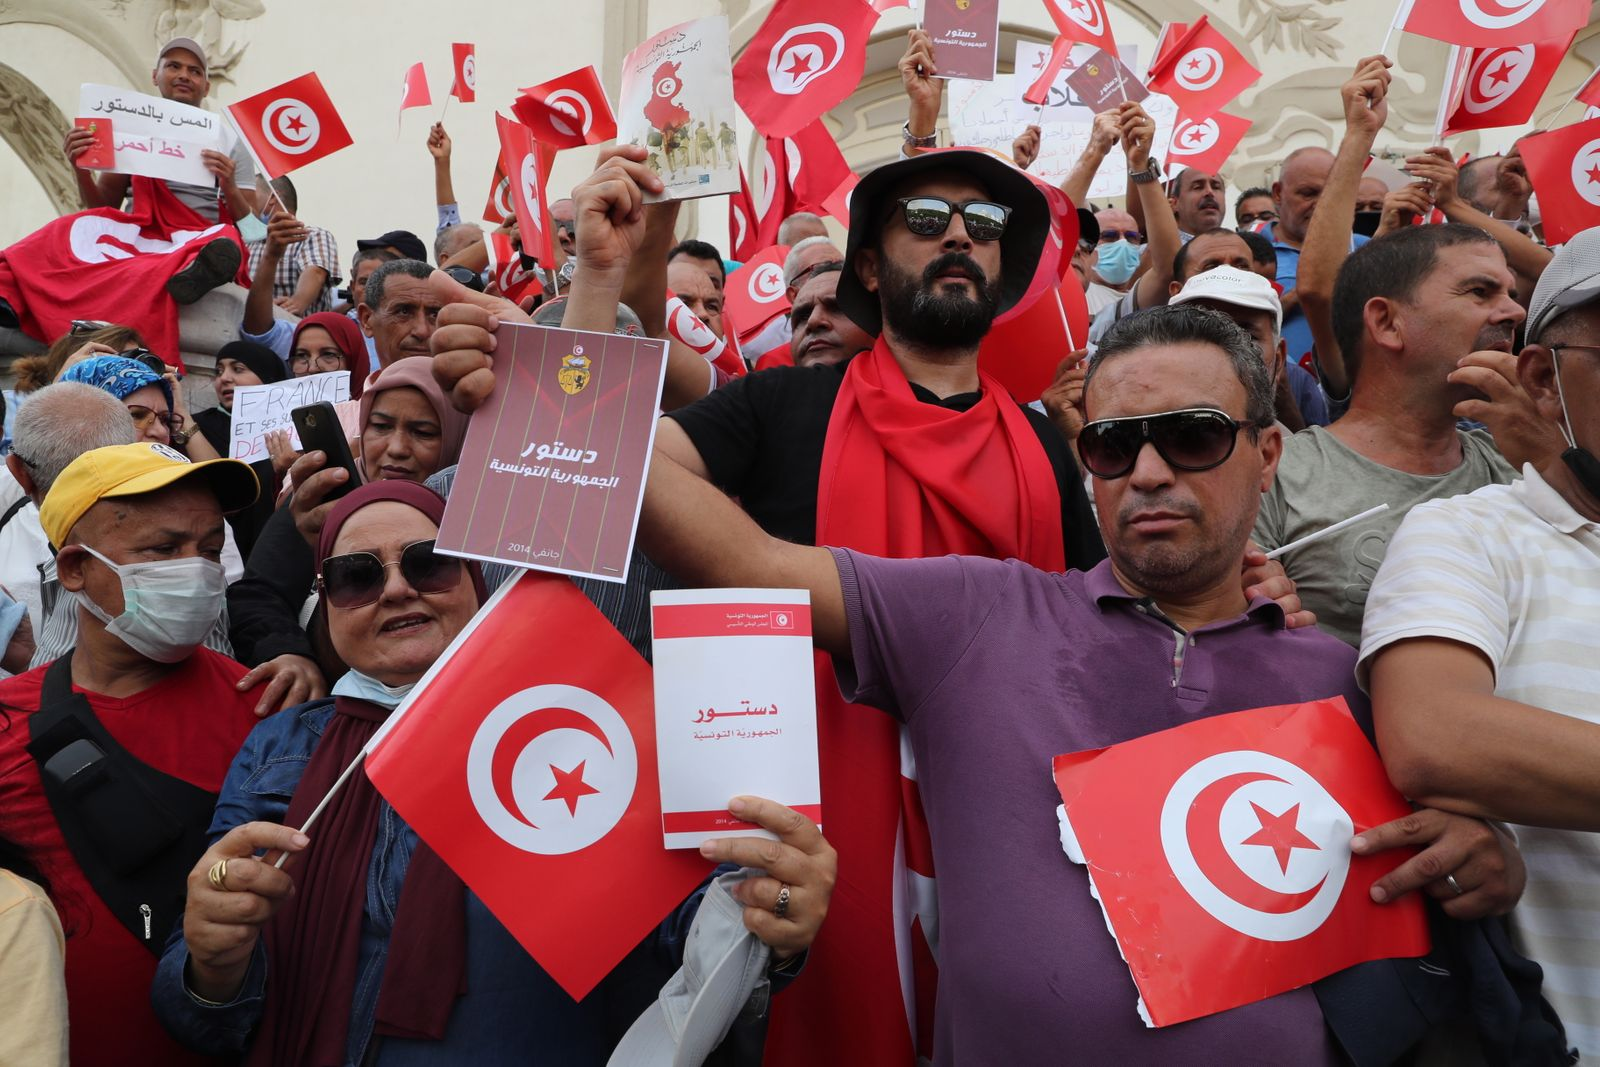 Opponents of Tunisia's President Kais Saied take part in a protest